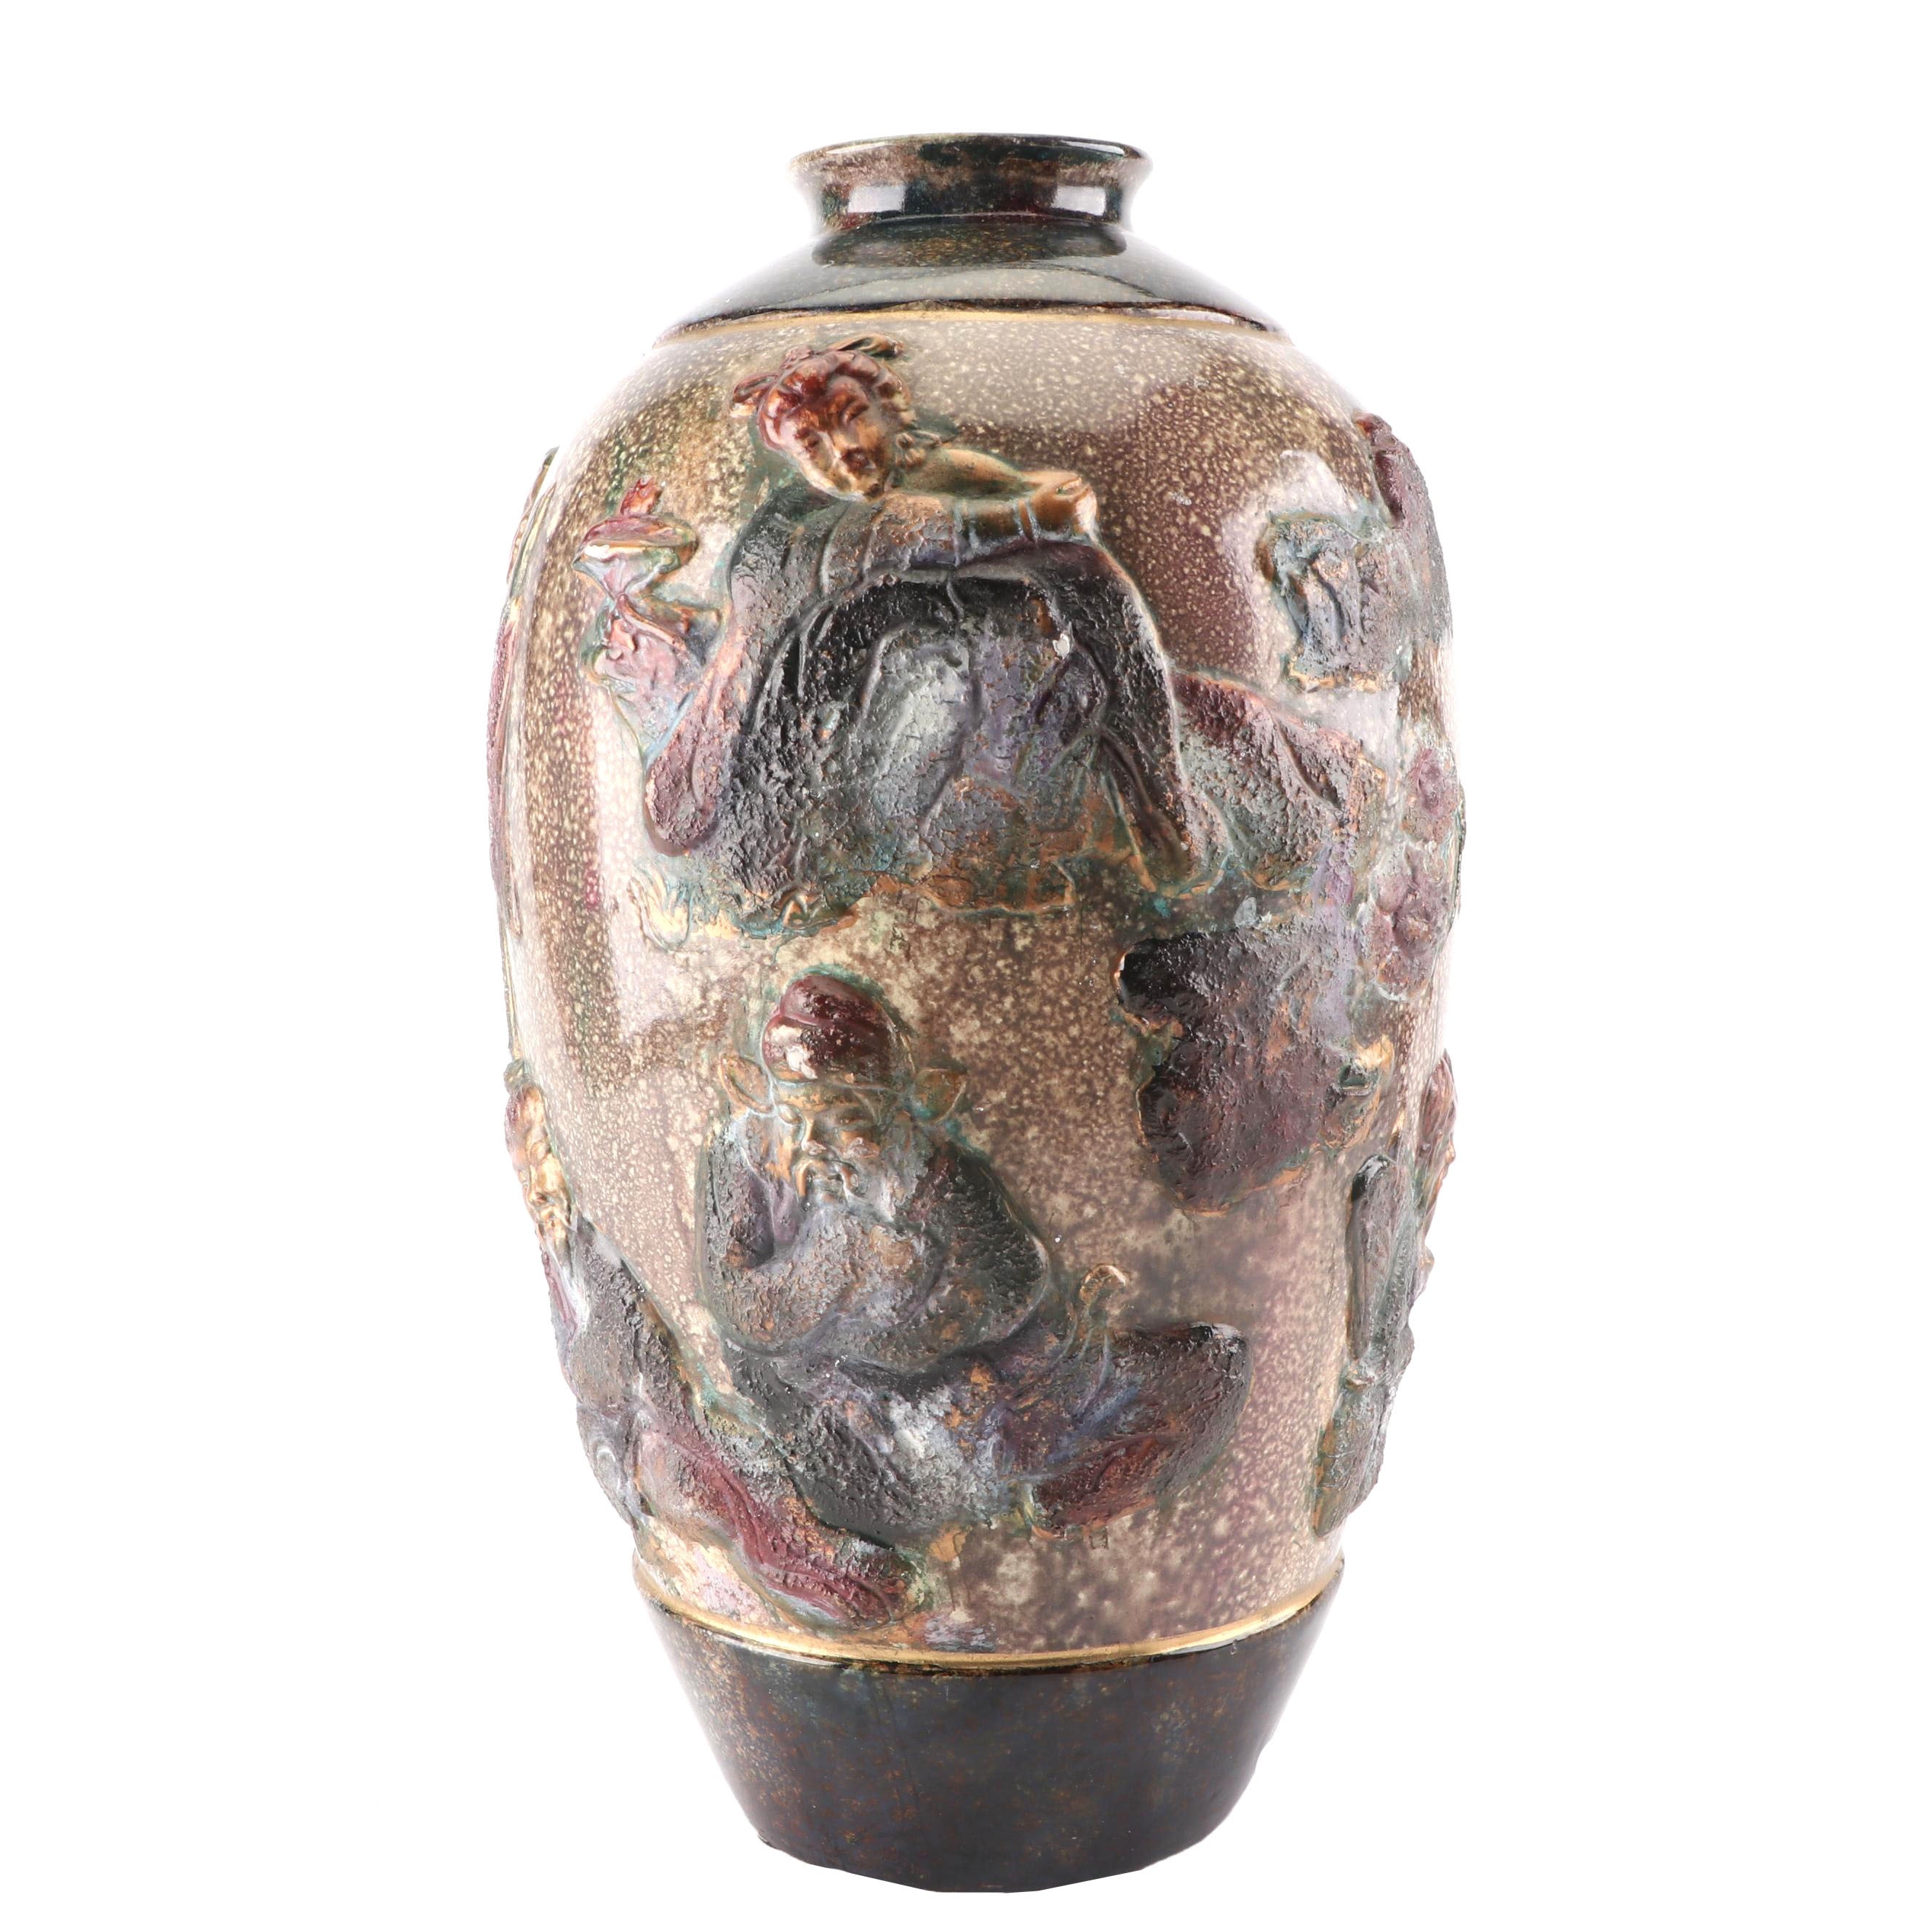 East Asian Vase with Figures in Relief